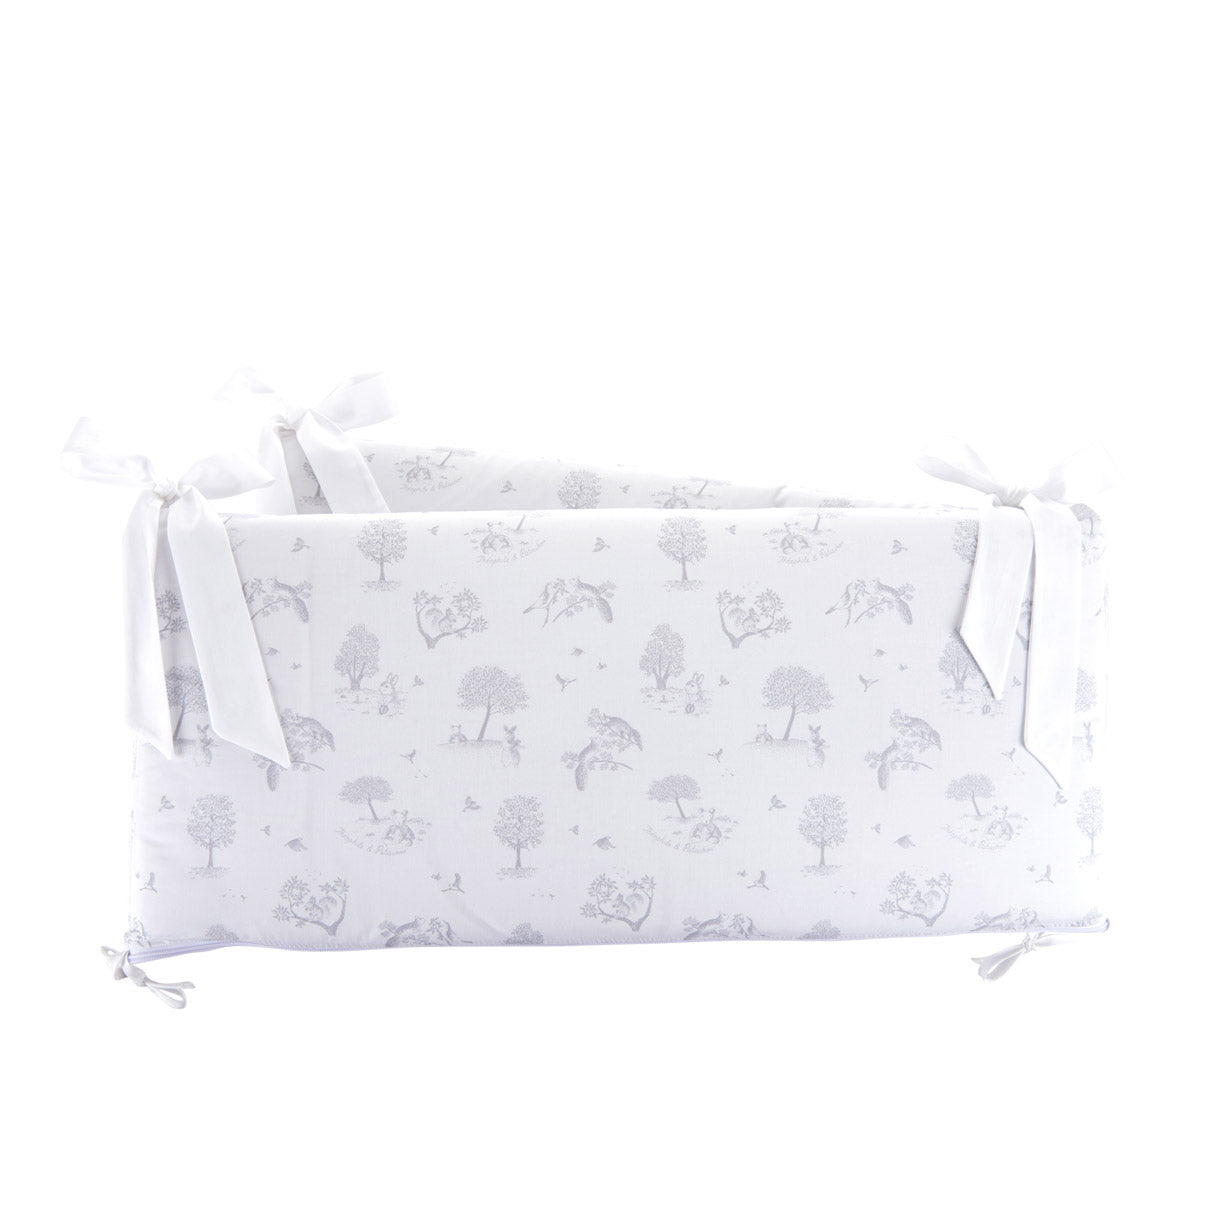 Theophile & Patachou Cot Bed Bumper 60 cm - Printed Soft Grey